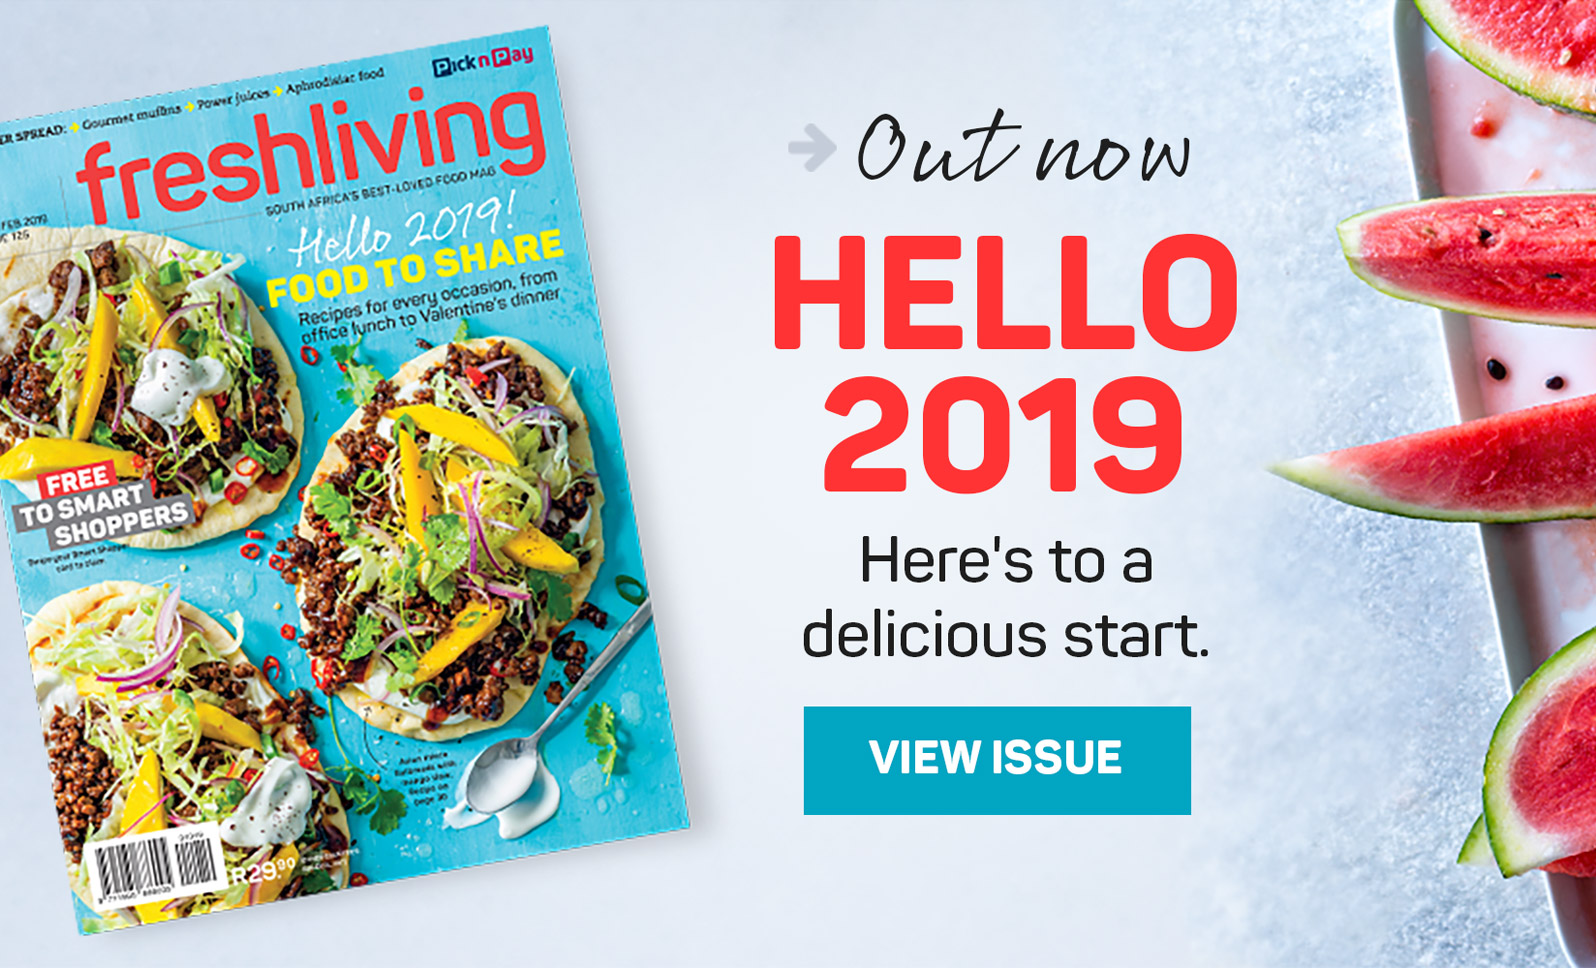 FESTIVE FEASTING. 'Tis the season for eating and celebrating!  View issue